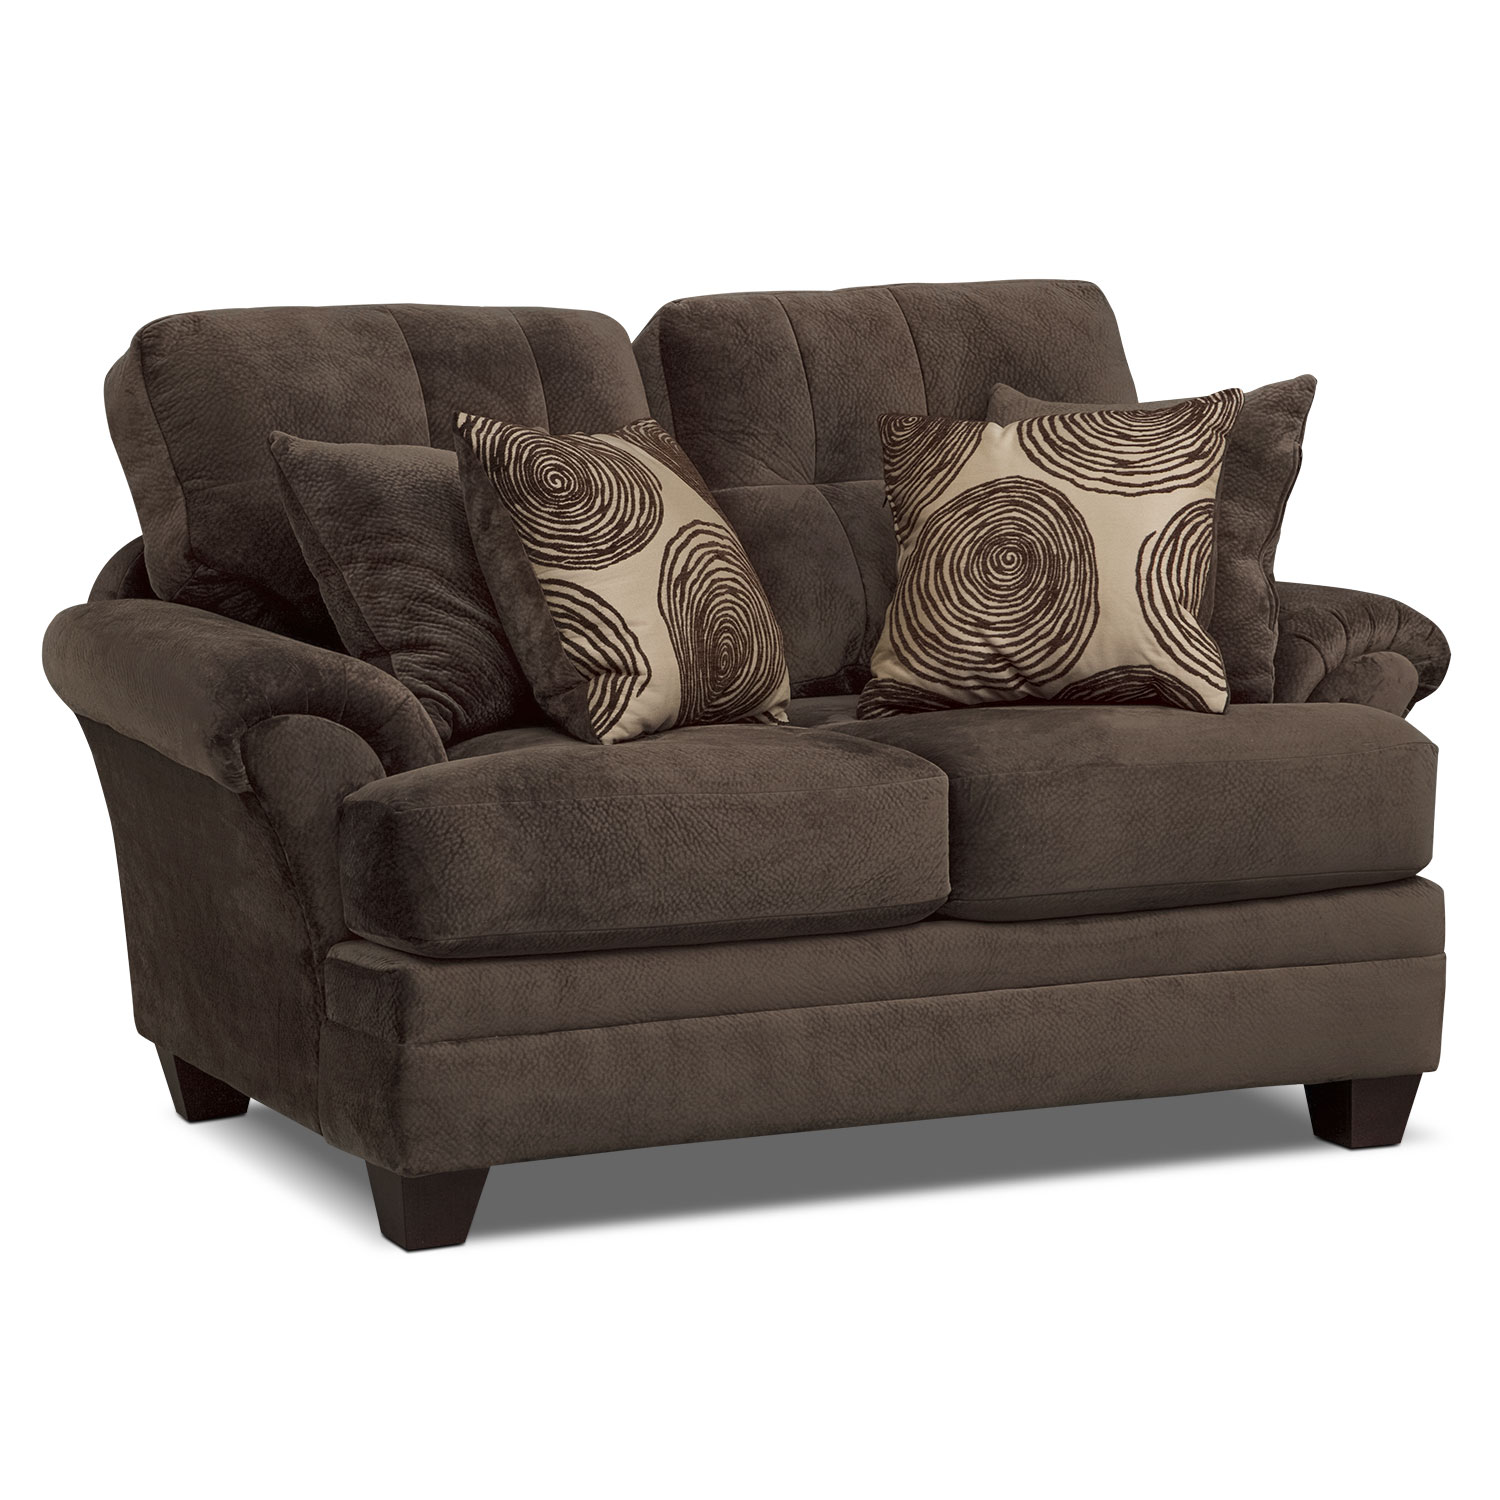 package set loveseat packages living city click to image graphite and change room adrian product sofa value furniture